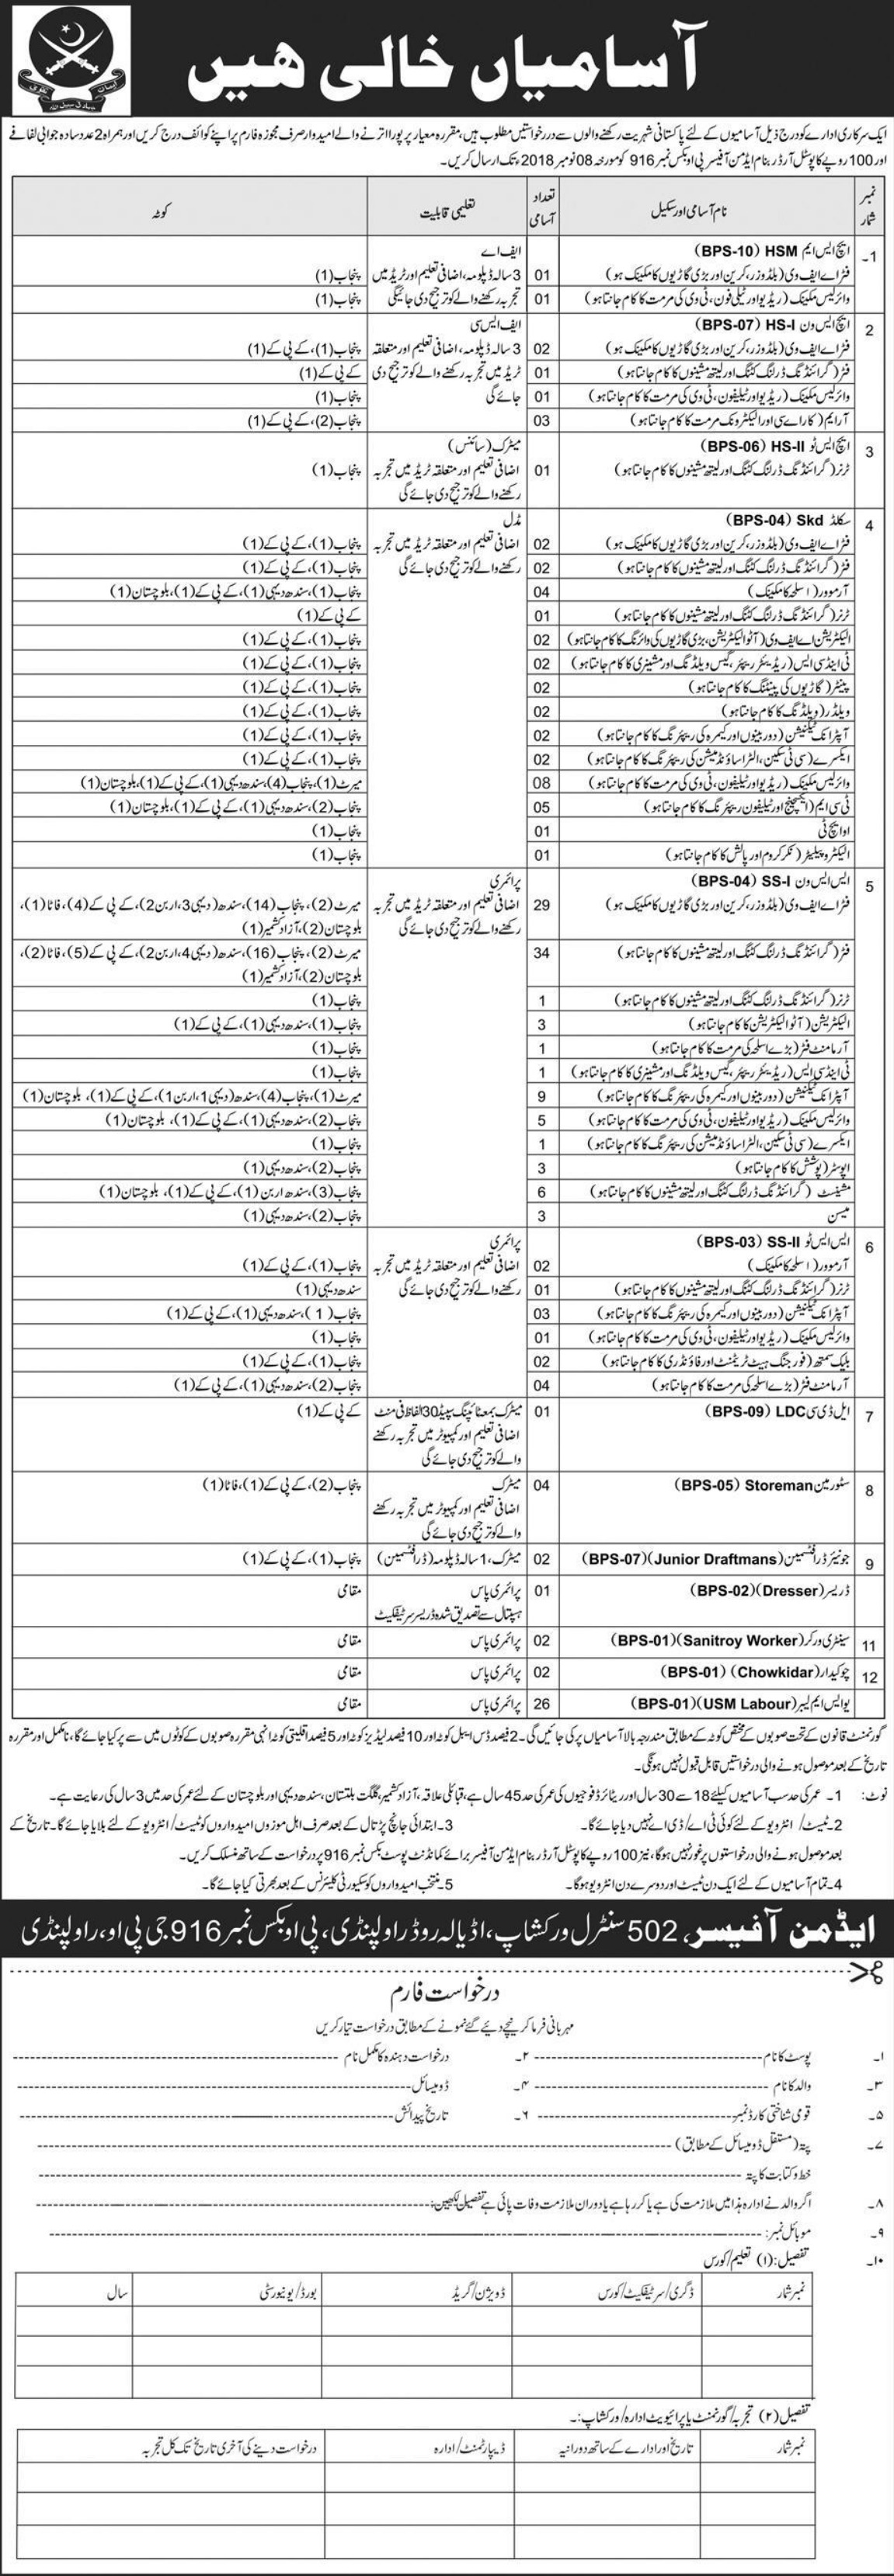 502 Central Workshop P.O. Box 916 GPO Rawalpindi Latest Jobs 2018